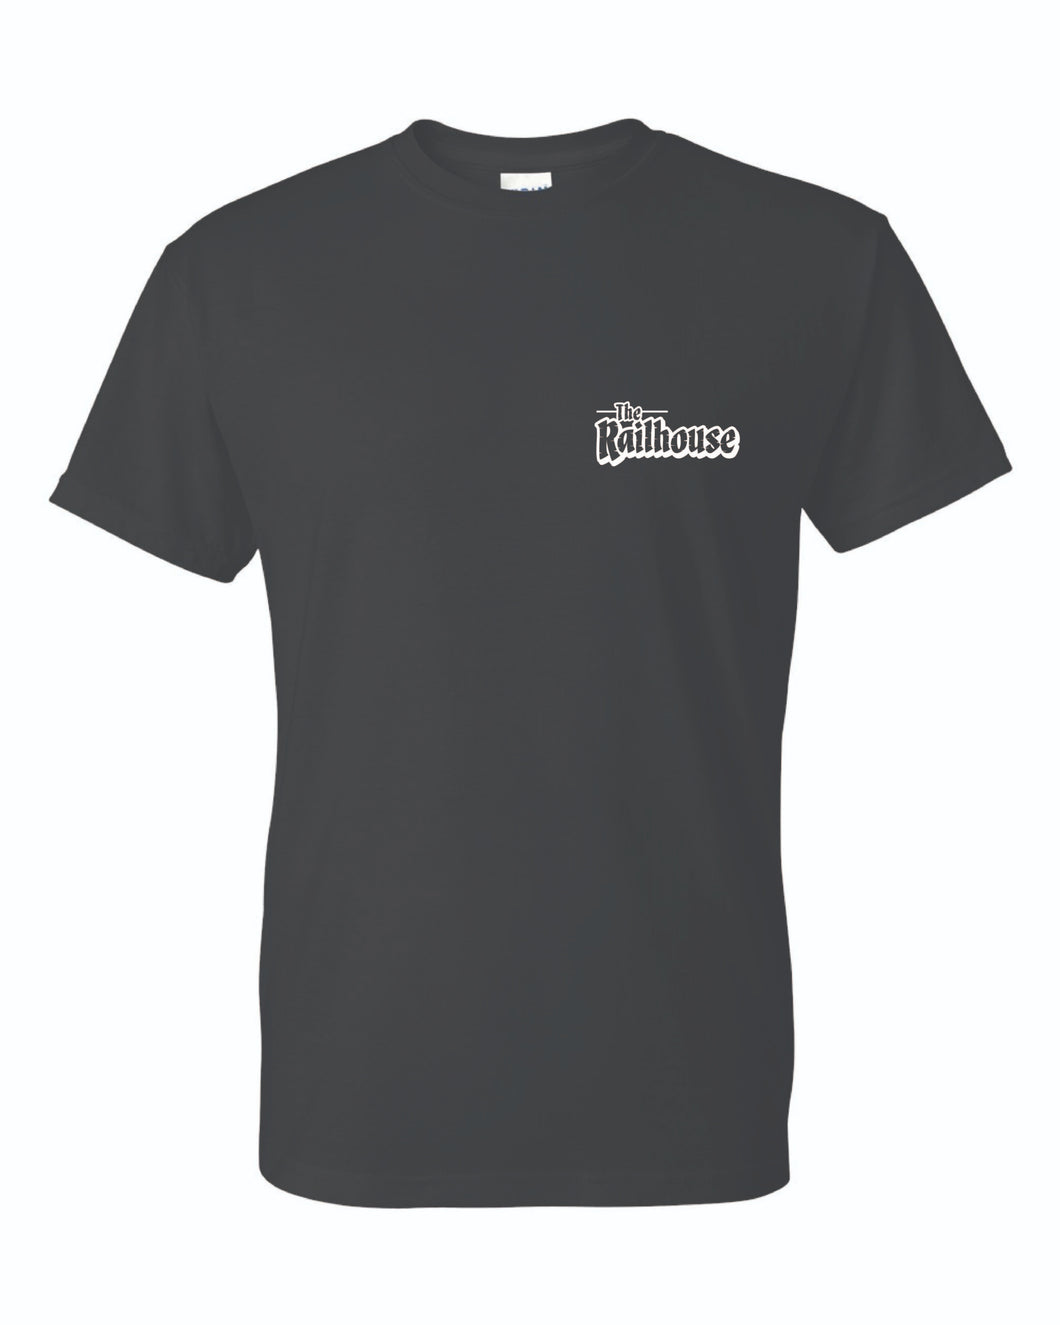 The Railhouse's - Short Sleeve T-shirt